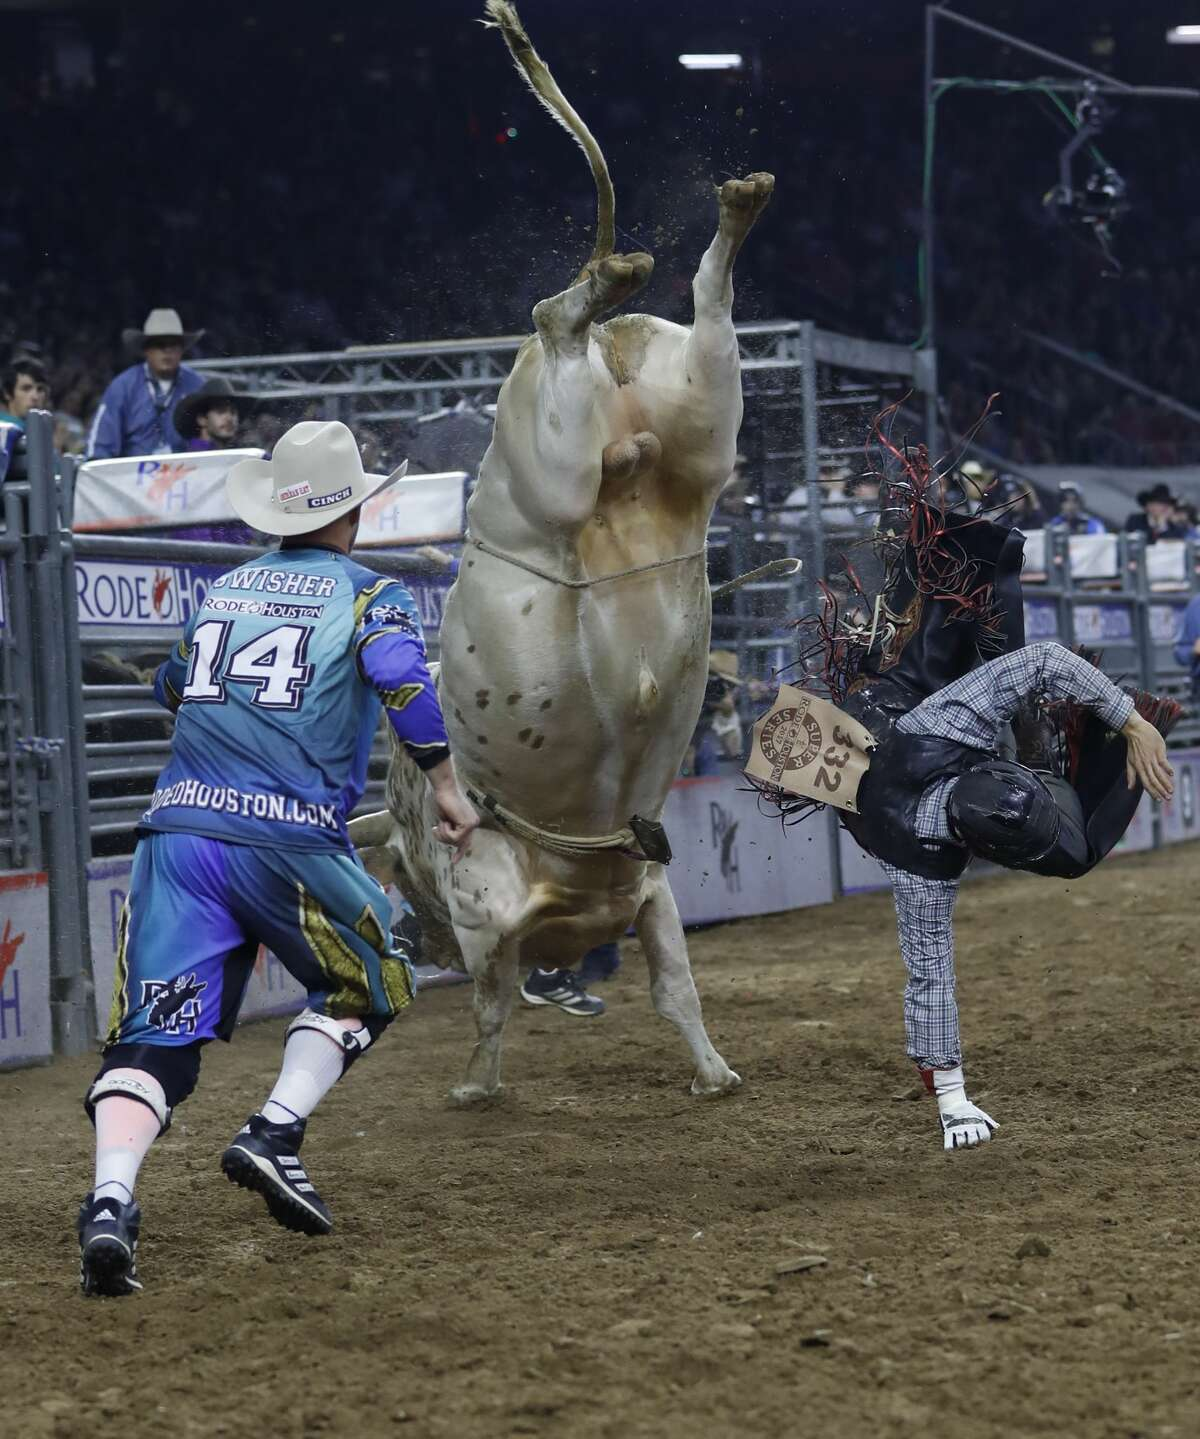 Eli Vastbinder gets tossed off of Jasper during the bull riding, wild card competition at the Houston Livestock Show and Rodeo at NRG Park, Friday, March 24, 2017, in Houston. ( Karen Warren / Houston Chronicle )